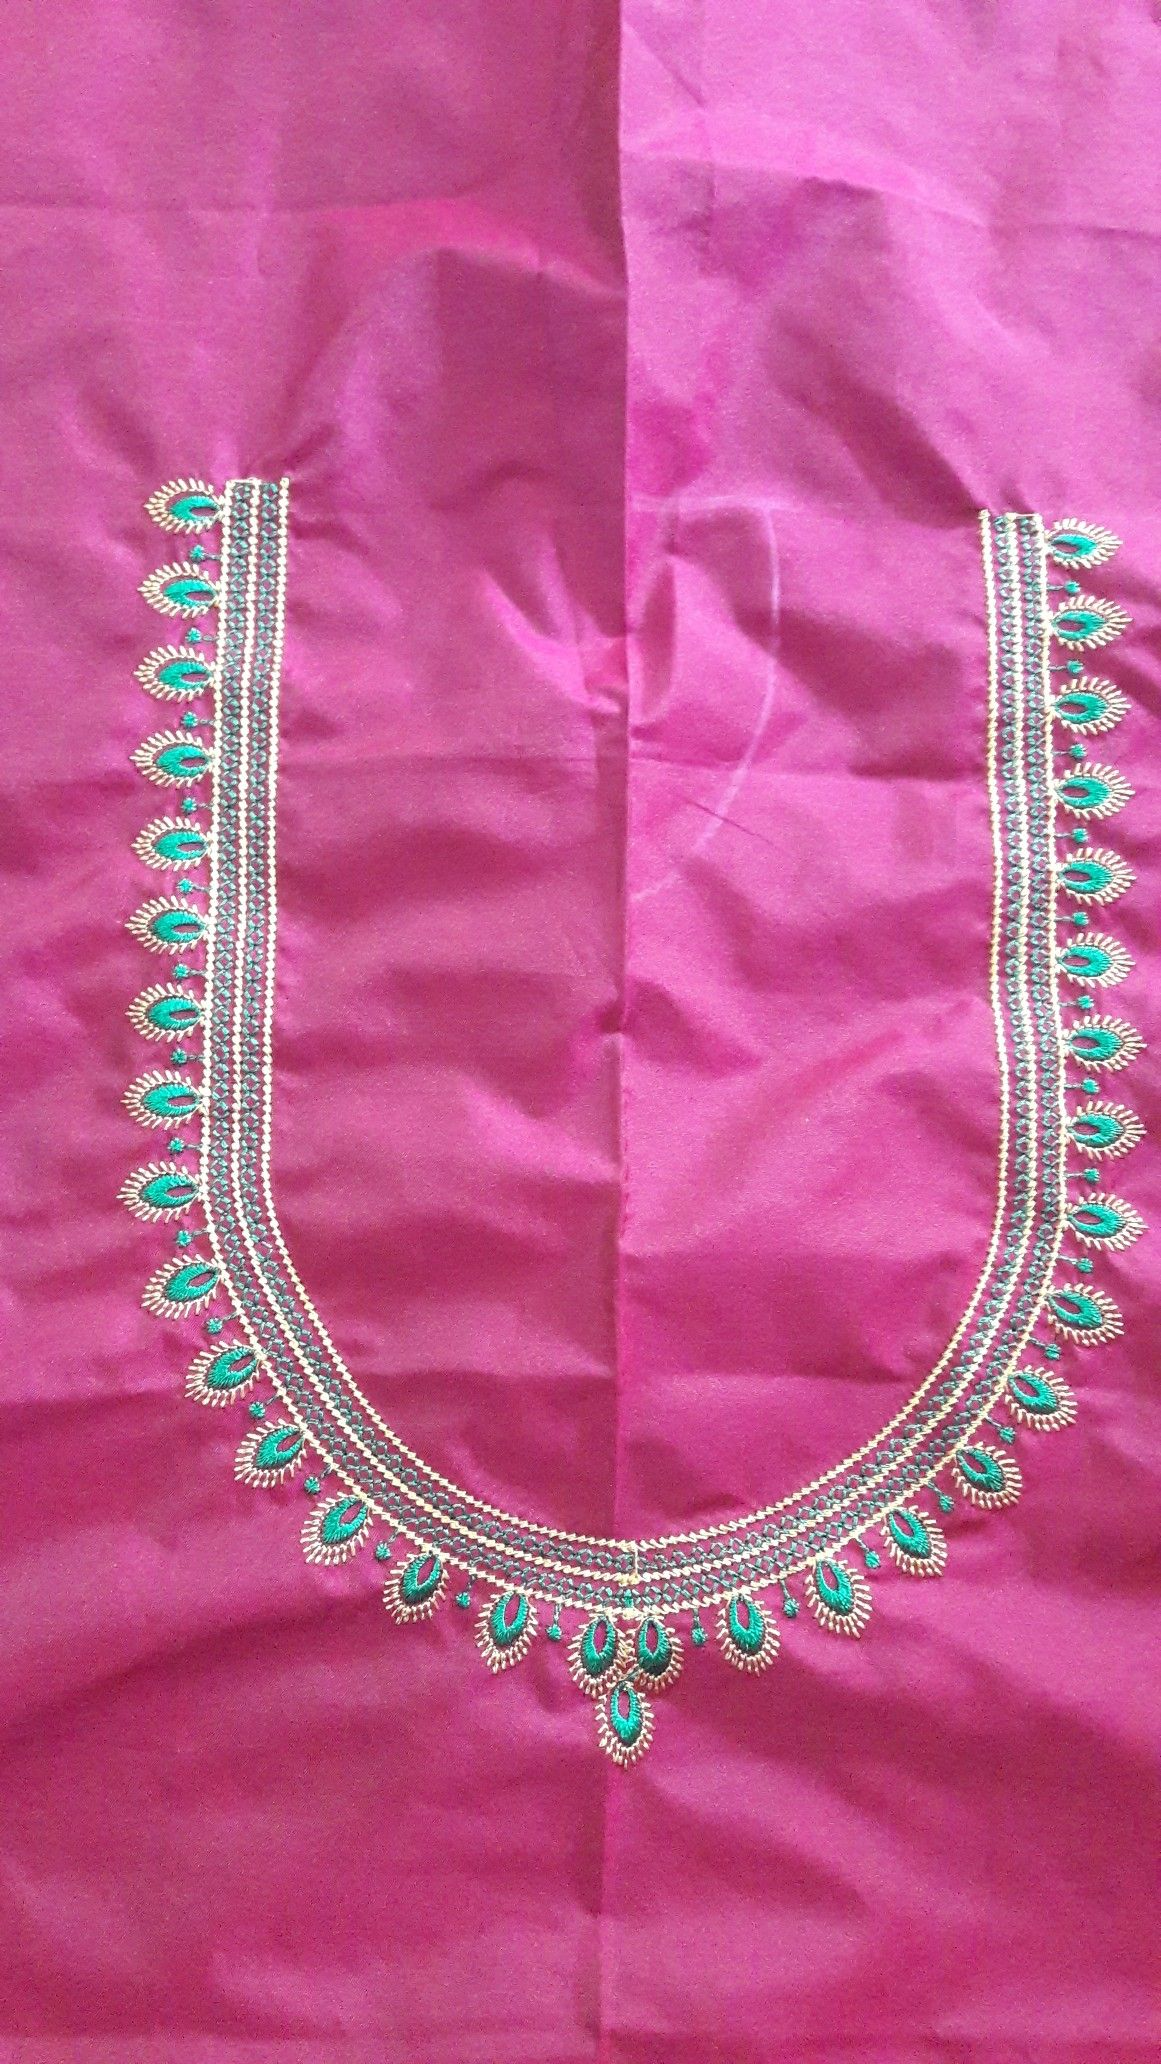 Pin By Manali On Blouse Designs Blouse Designs Pink Saree Blouse